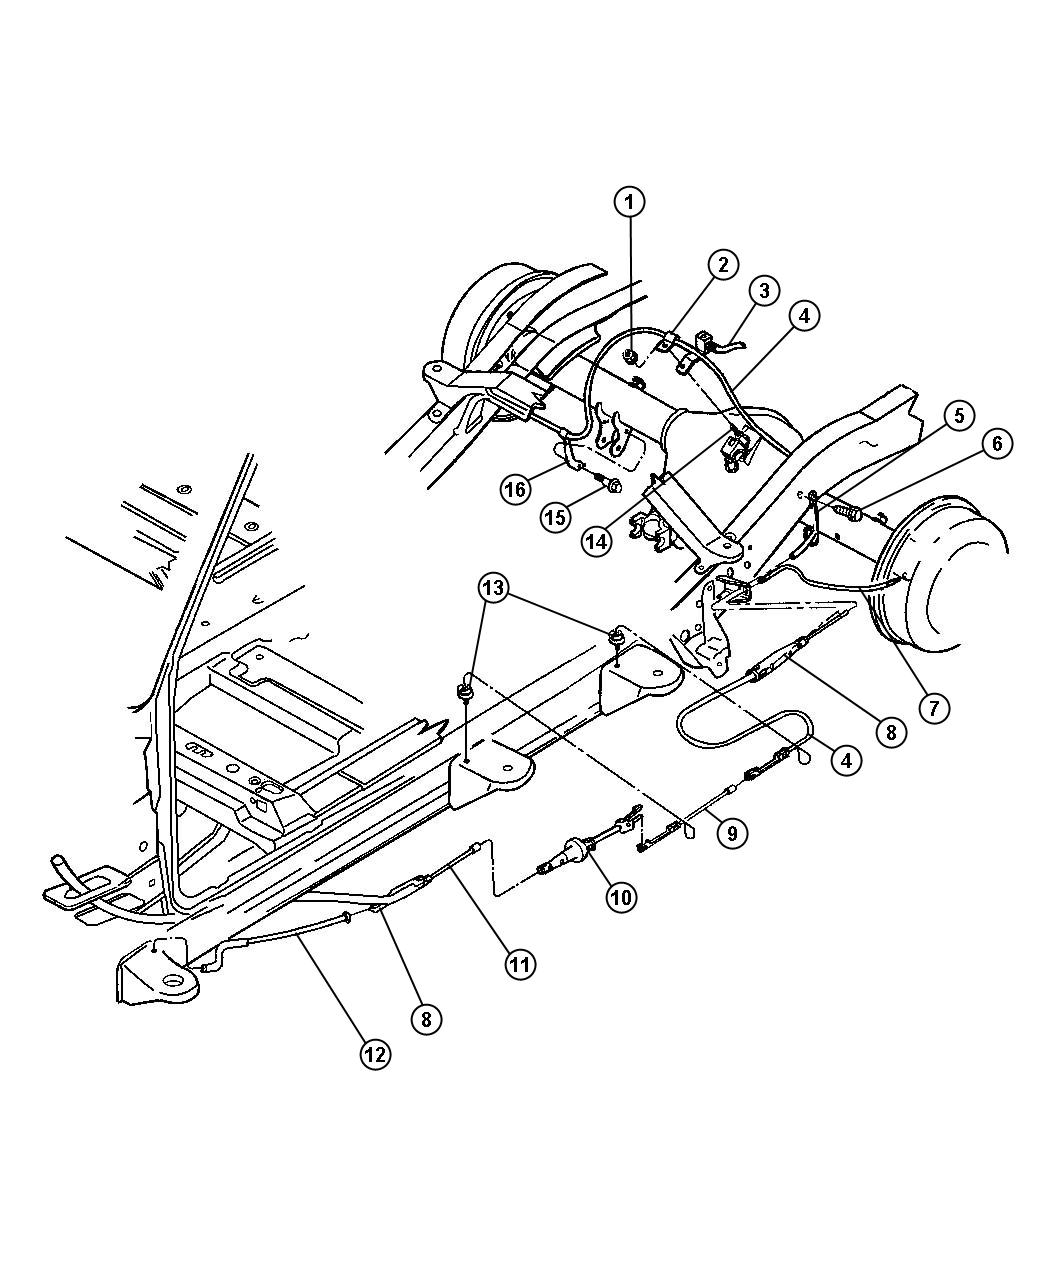 ShowAssembly furthermore Wells Cargo Wiring Diagram also 250909096146 together with ShowAssembly furthermore ShowAssembly. on jeep oem factory parts